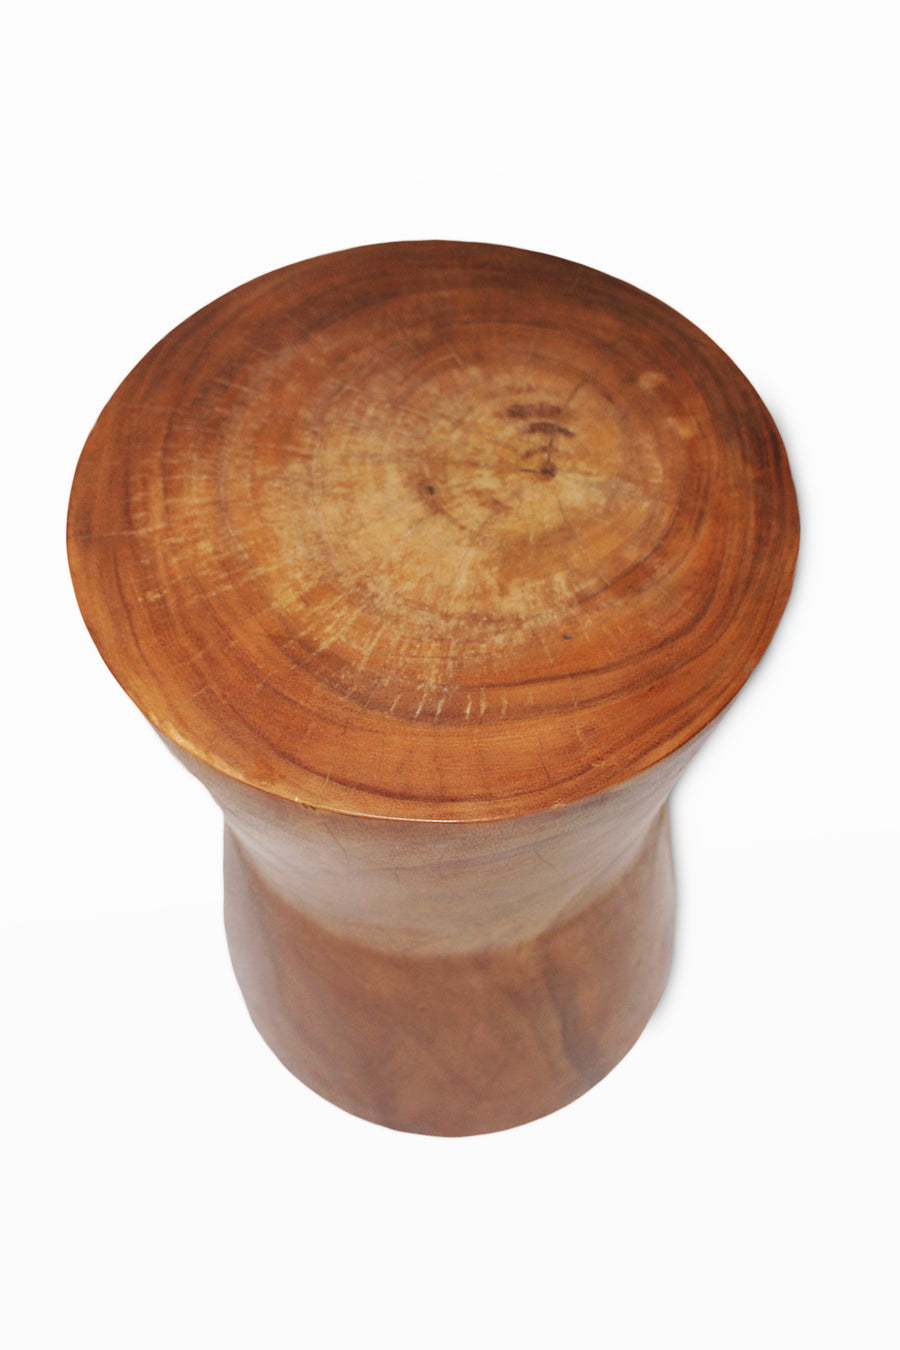 Monkey Pod  Round Angle  Stool Natural Finish 15x15x21.5